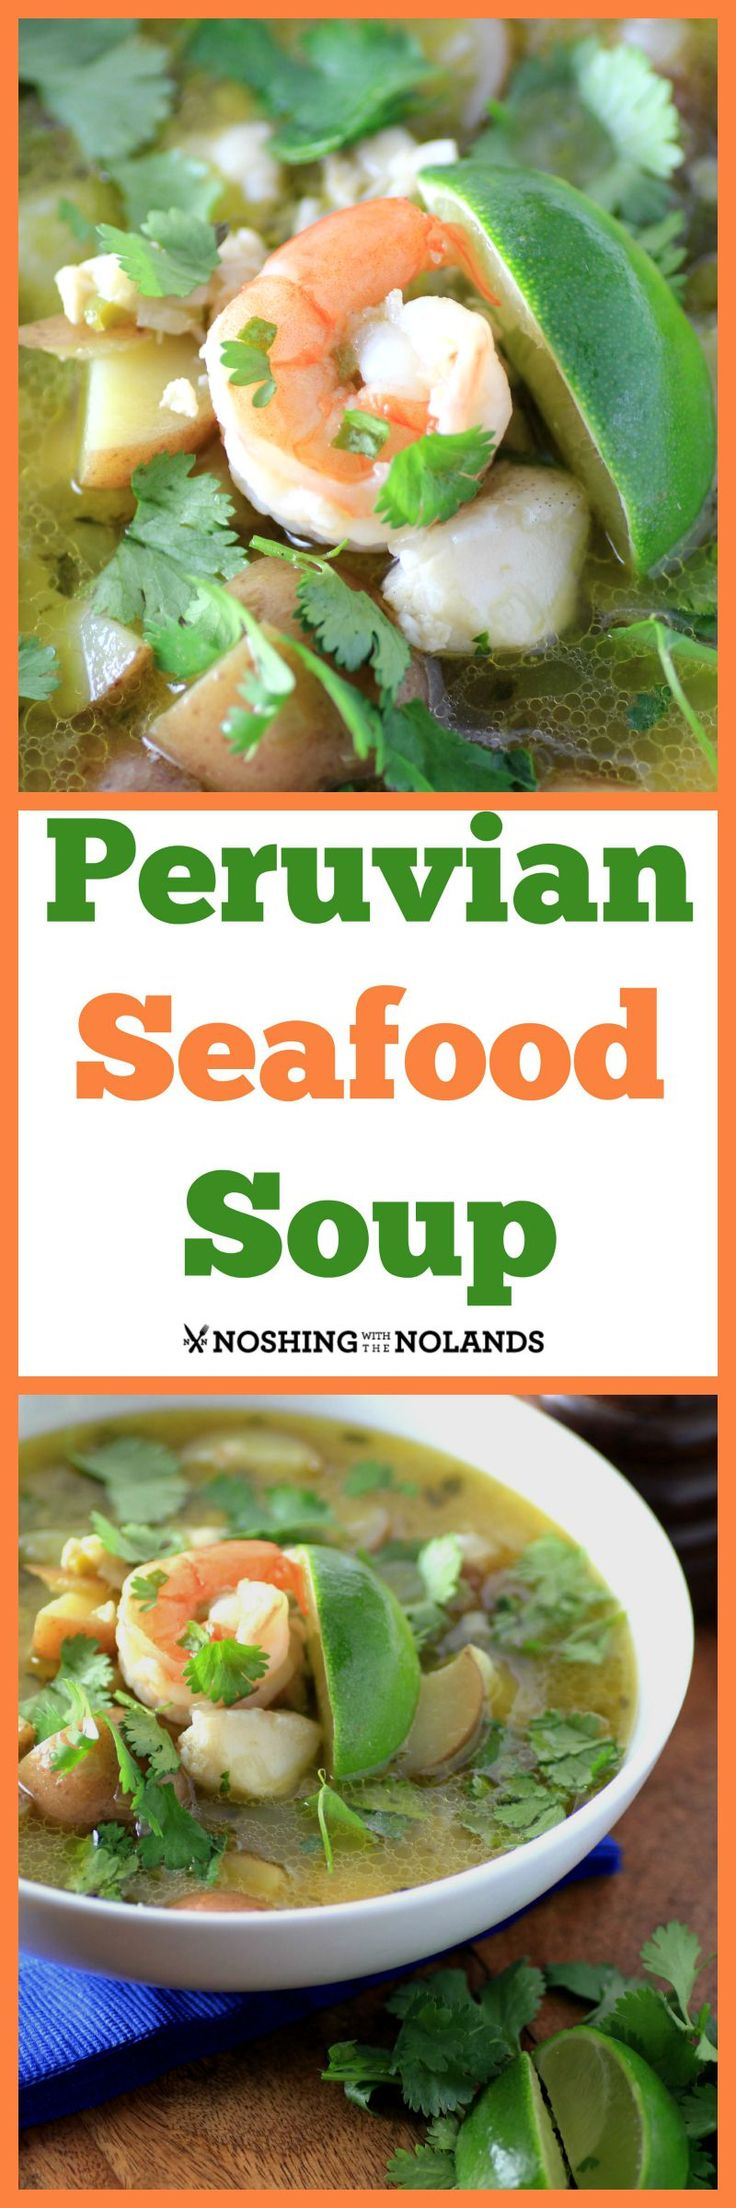 Peruvian seafood soup this is a fabulous treat for seafood lovers